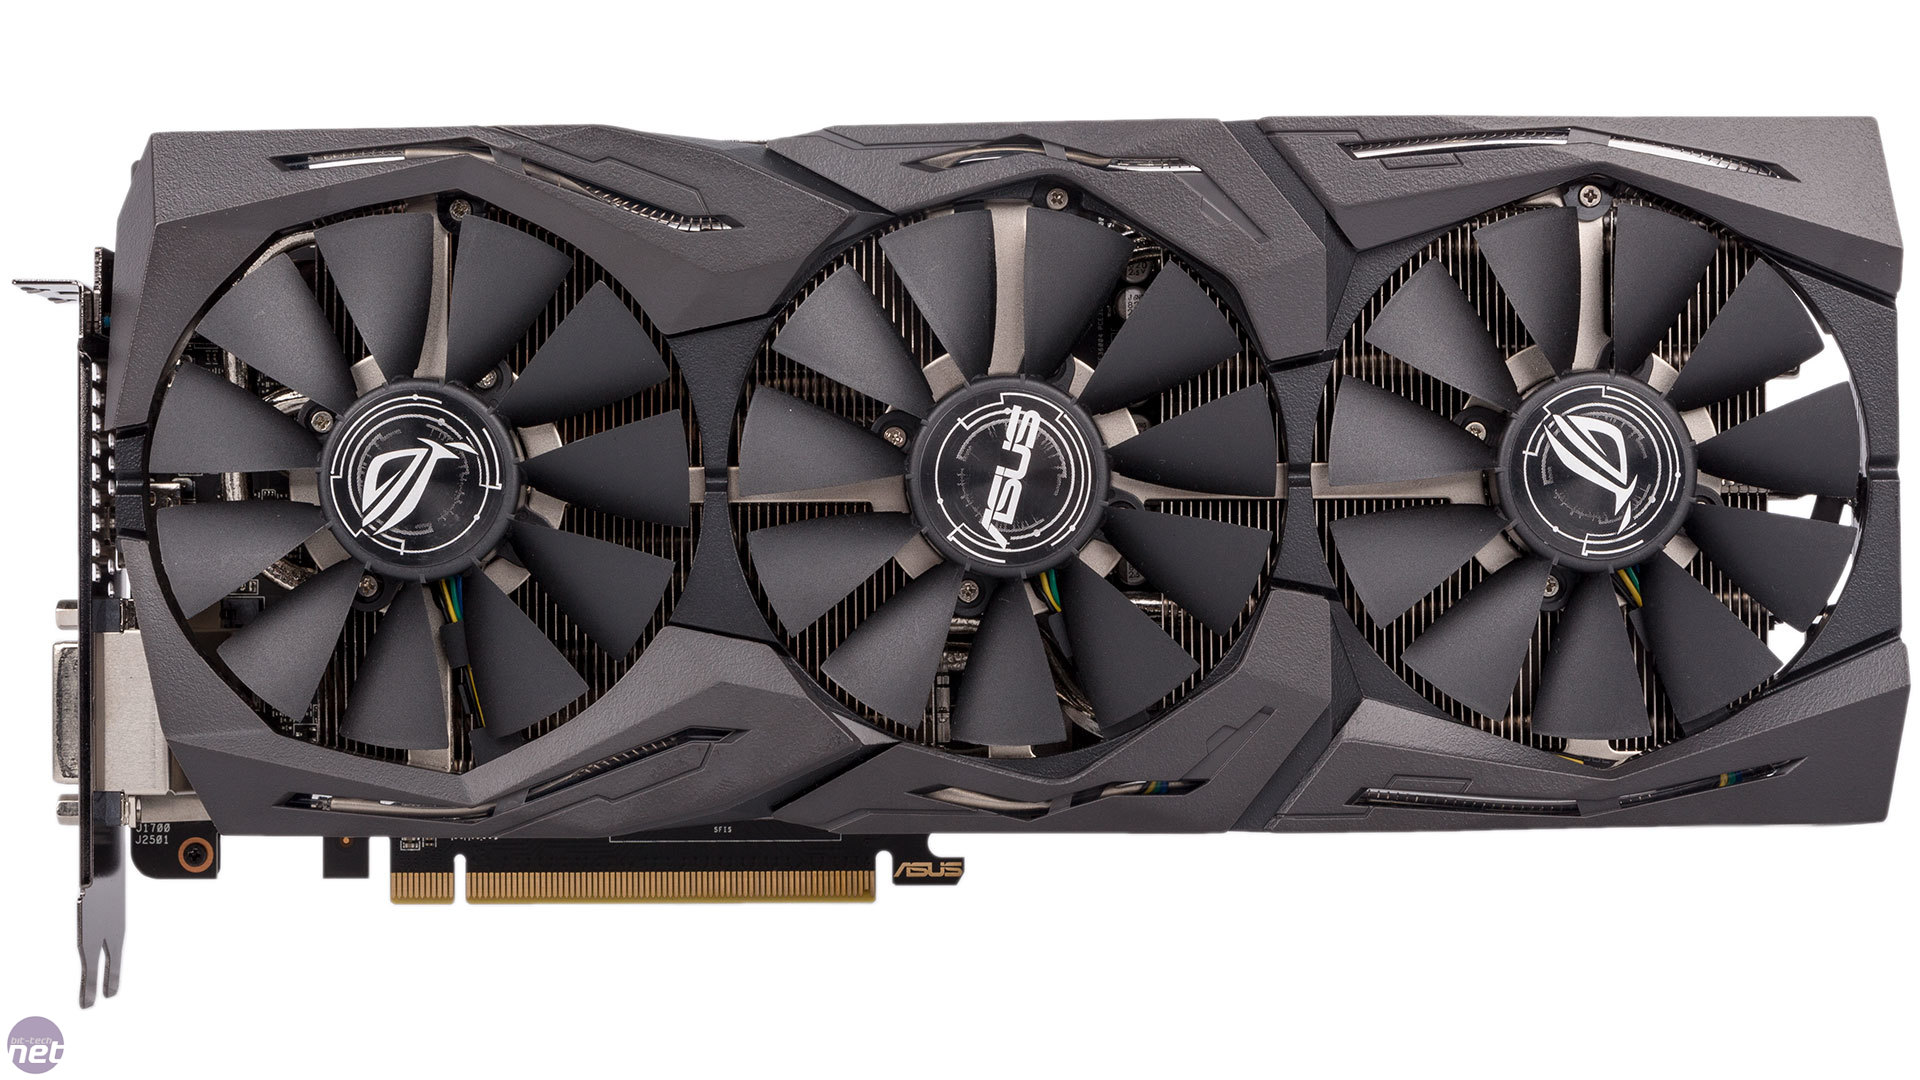 Asus Radeon RX 580 Strix Gaming Top OC Review | bit-tech net